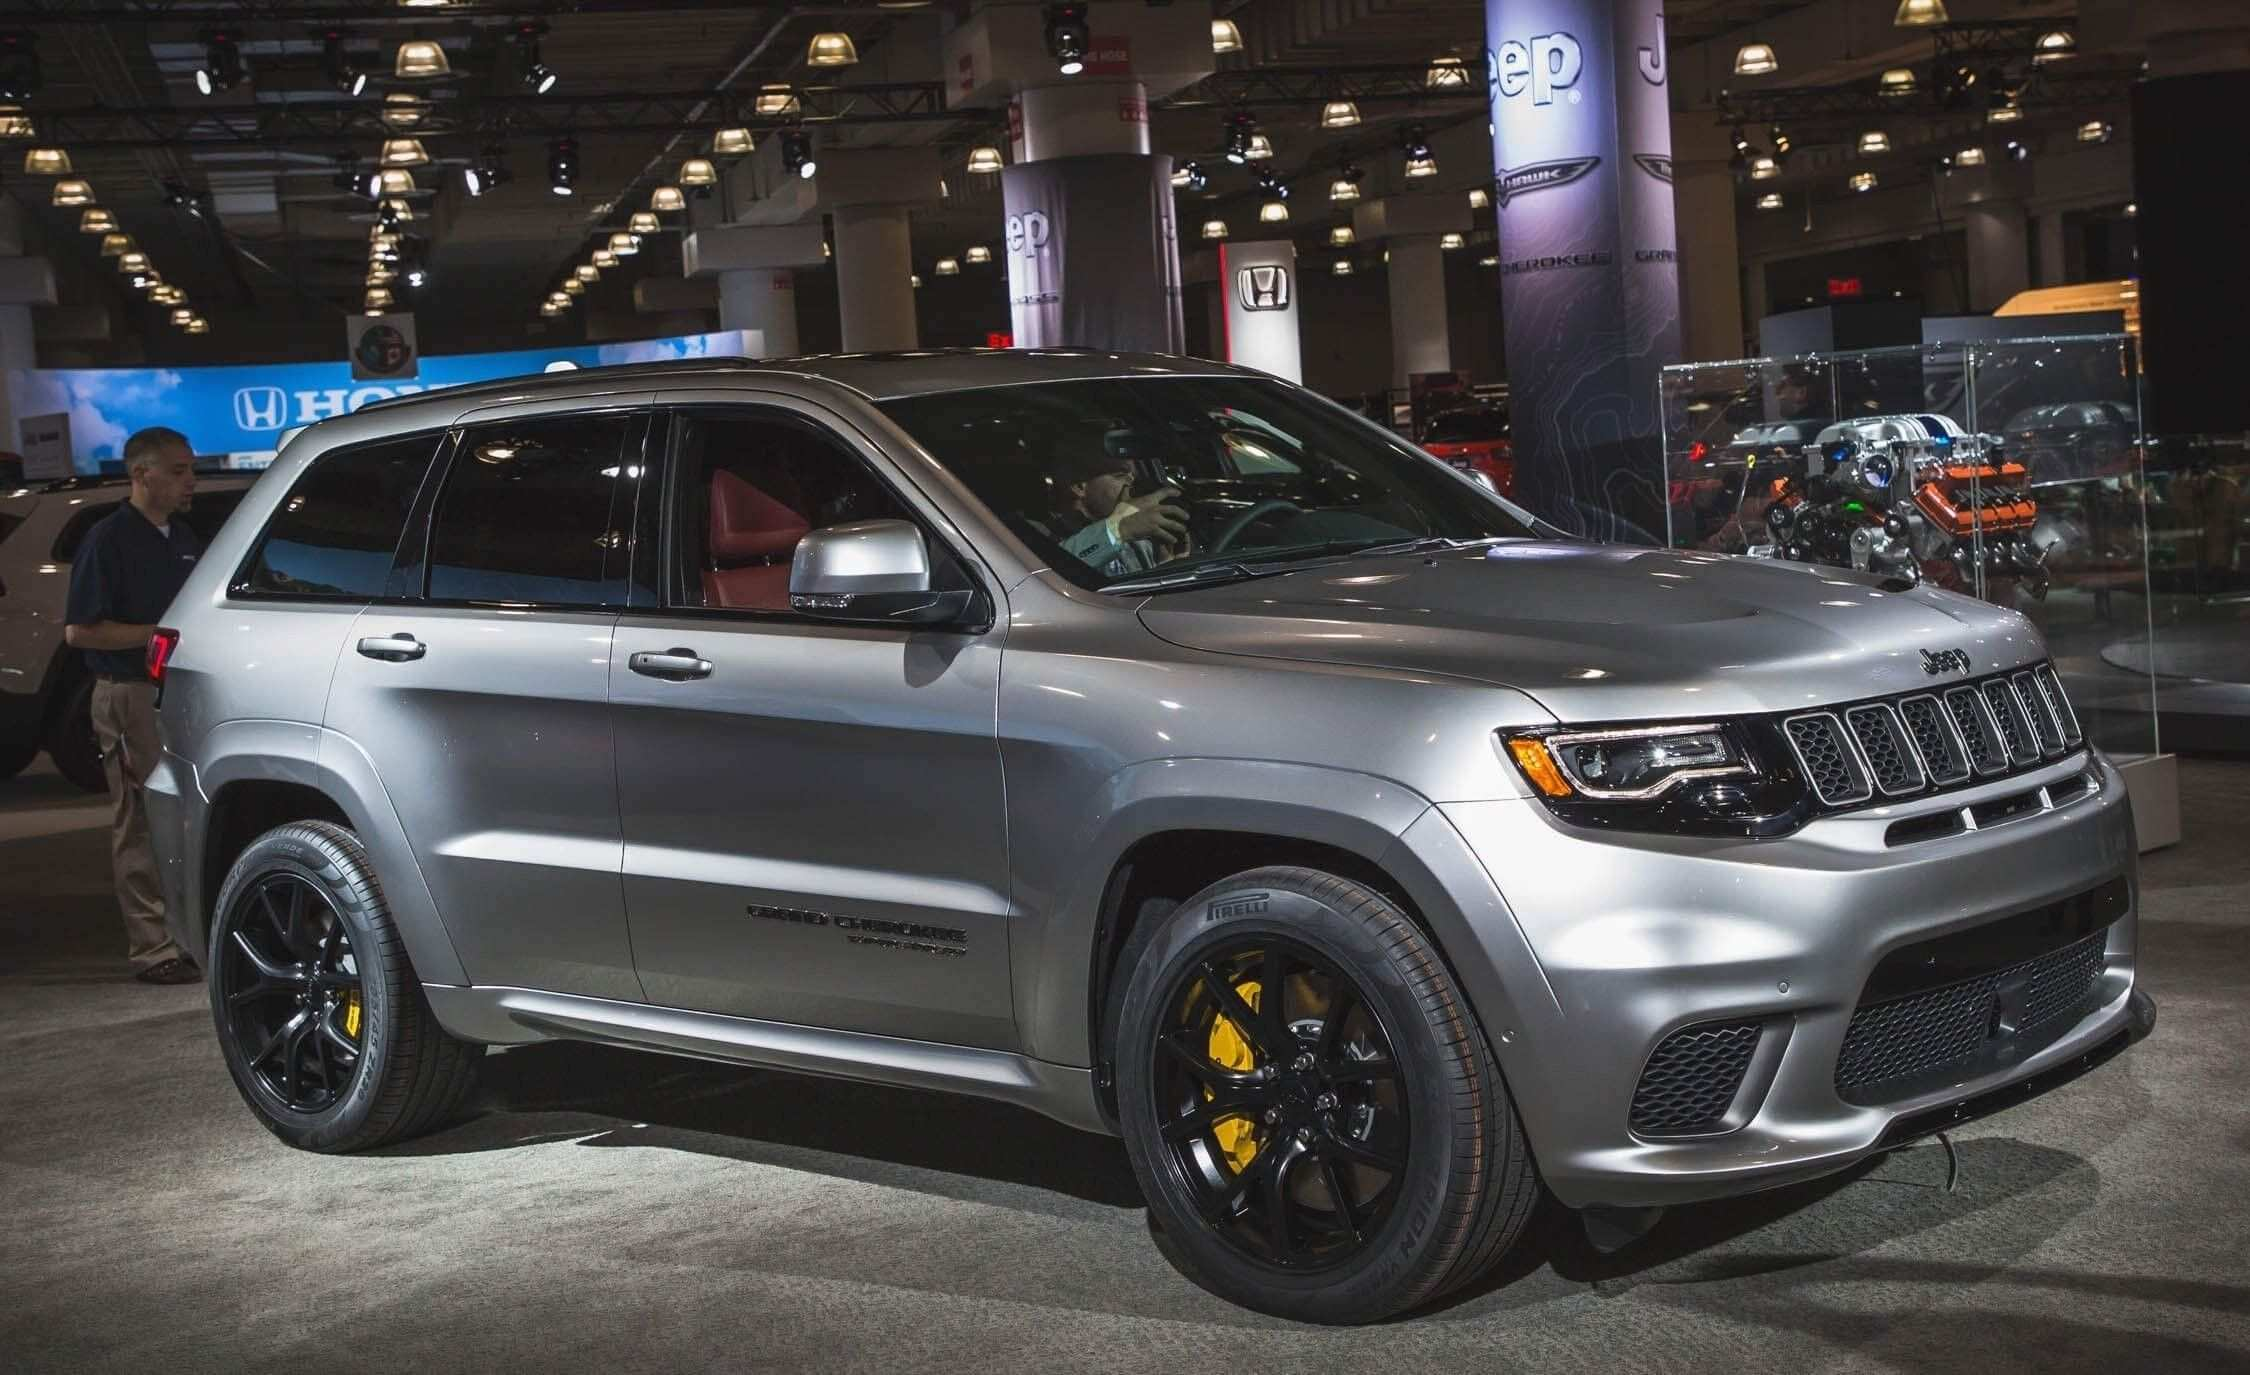 64 All New 2019 Dodge Grand Cherokee Release Date Images with 2019 Dodge Grand Cherokee Release Date